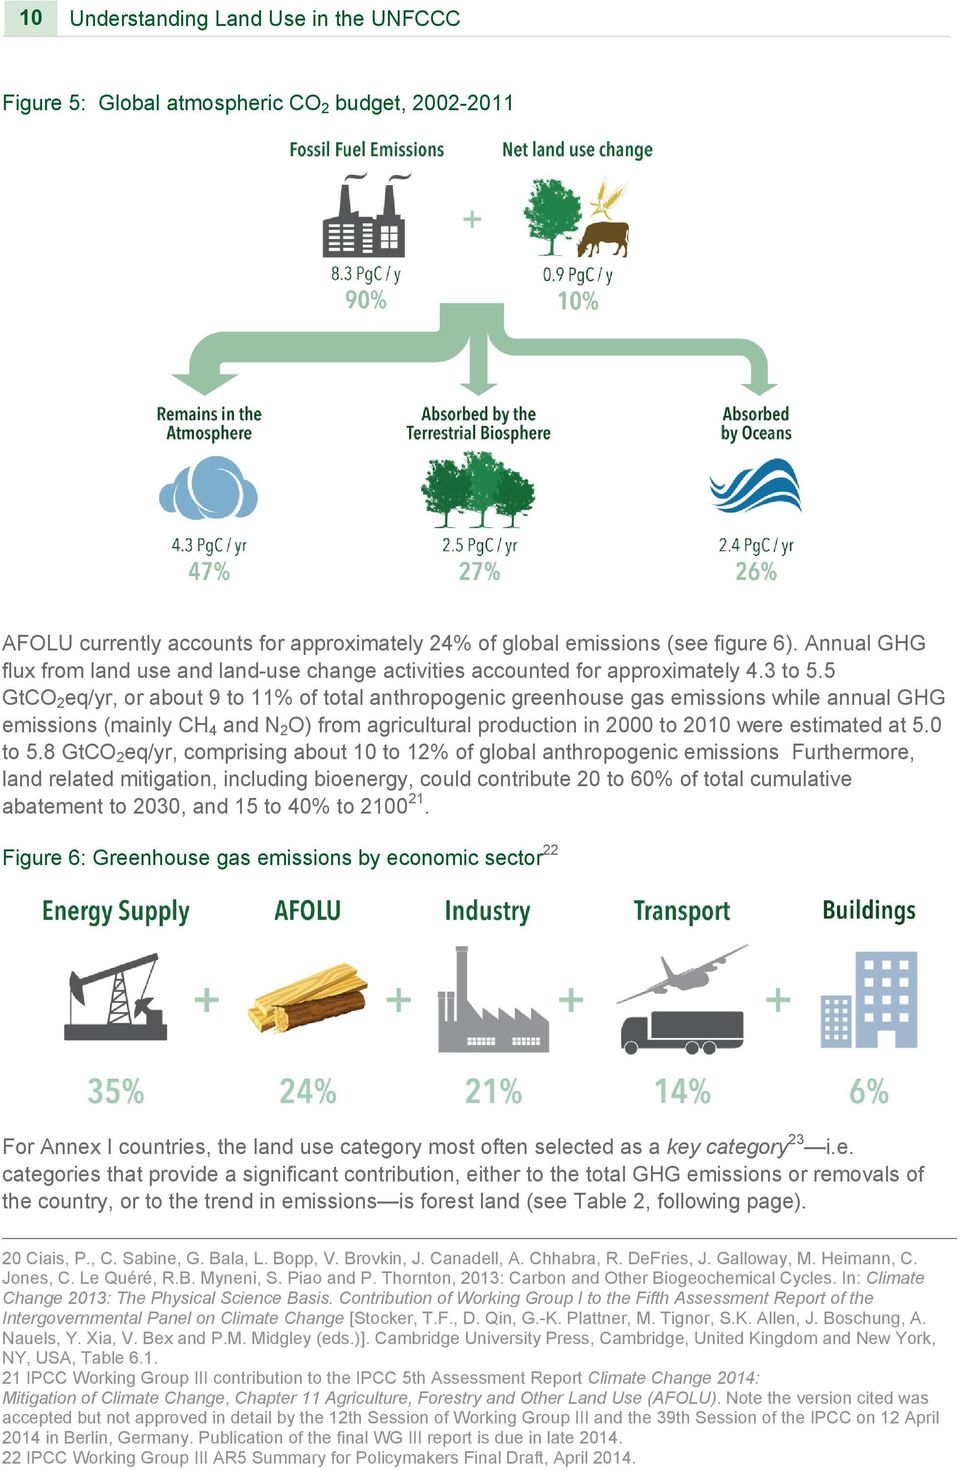 5 GtCO 2 eq/yr, or about 9 to 11% of total anthropogenic greenhouse gas emissions while annual GHG emissions (mainly CH 4 and N 2 O) from agricultural production in 2000 to 2010 were estimated at 5.